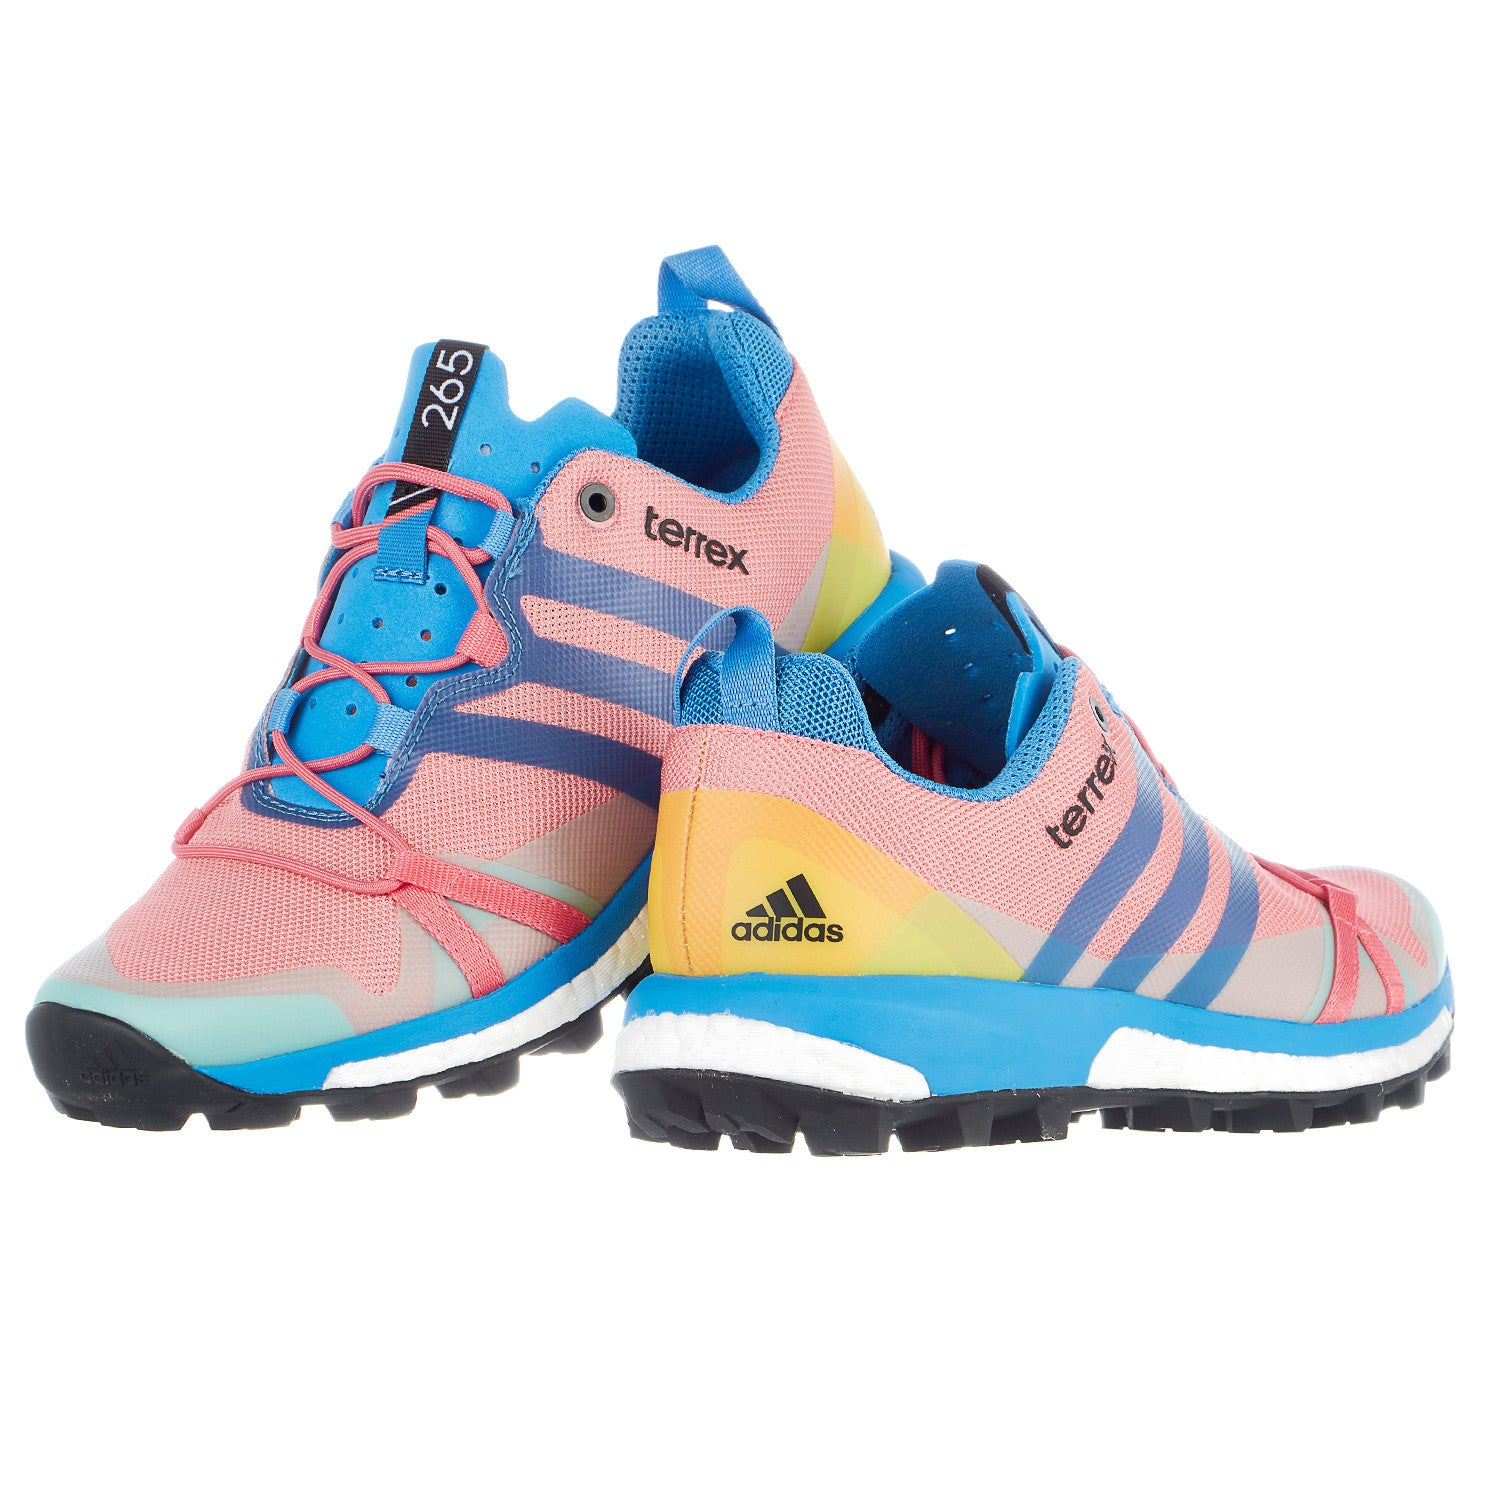 the best attitude 9d518 c1fb5 Adidas Outdoor Terrex Agravic Round Toe Canvas Trail Running - Women s -  Shoplifestyle